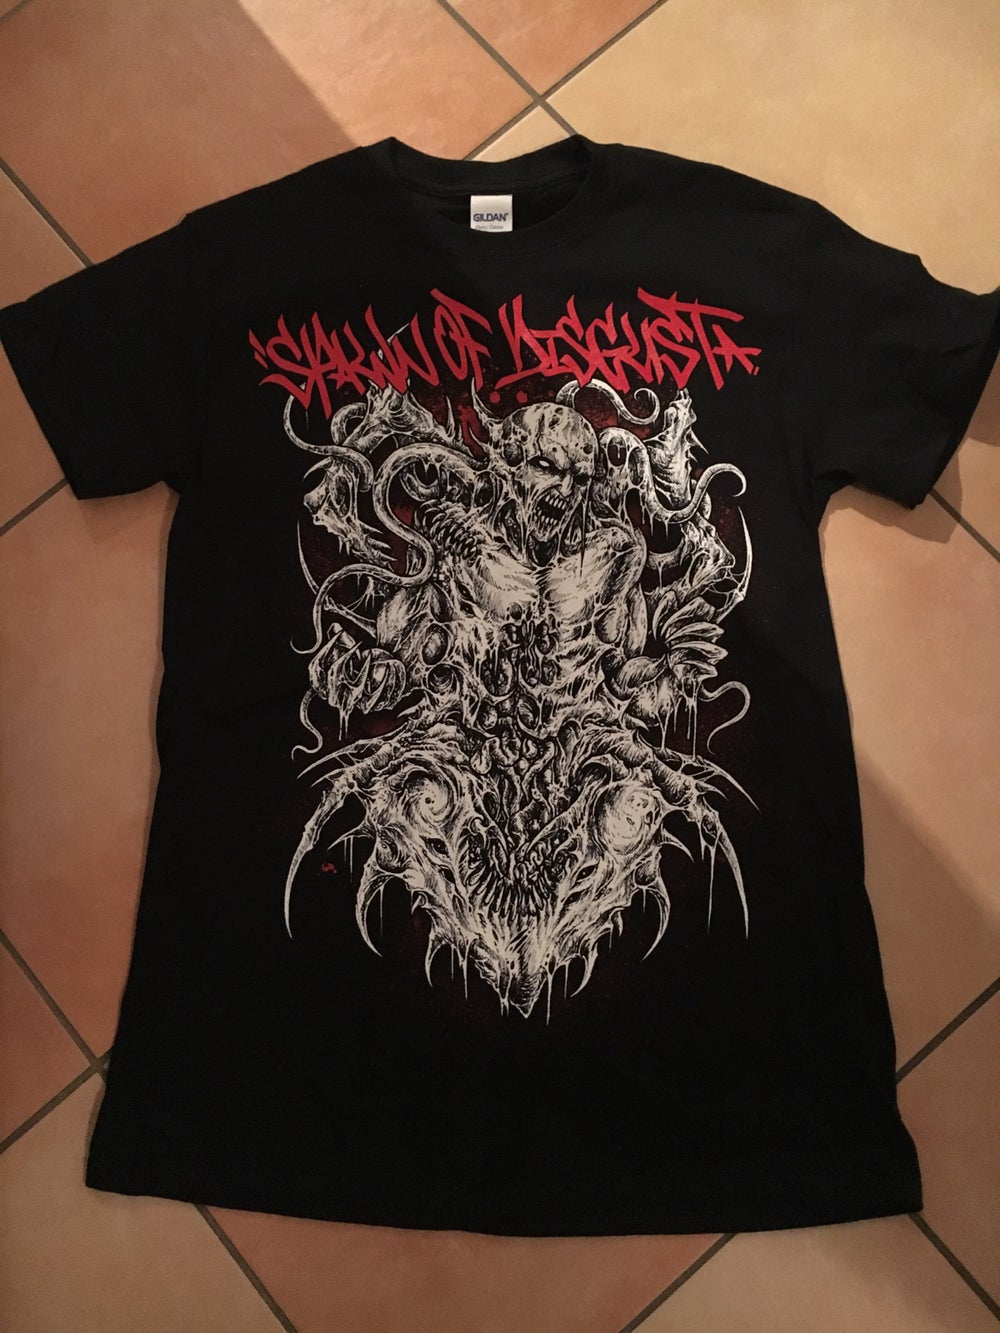 SPAWN OF DISGUST T-Shirt